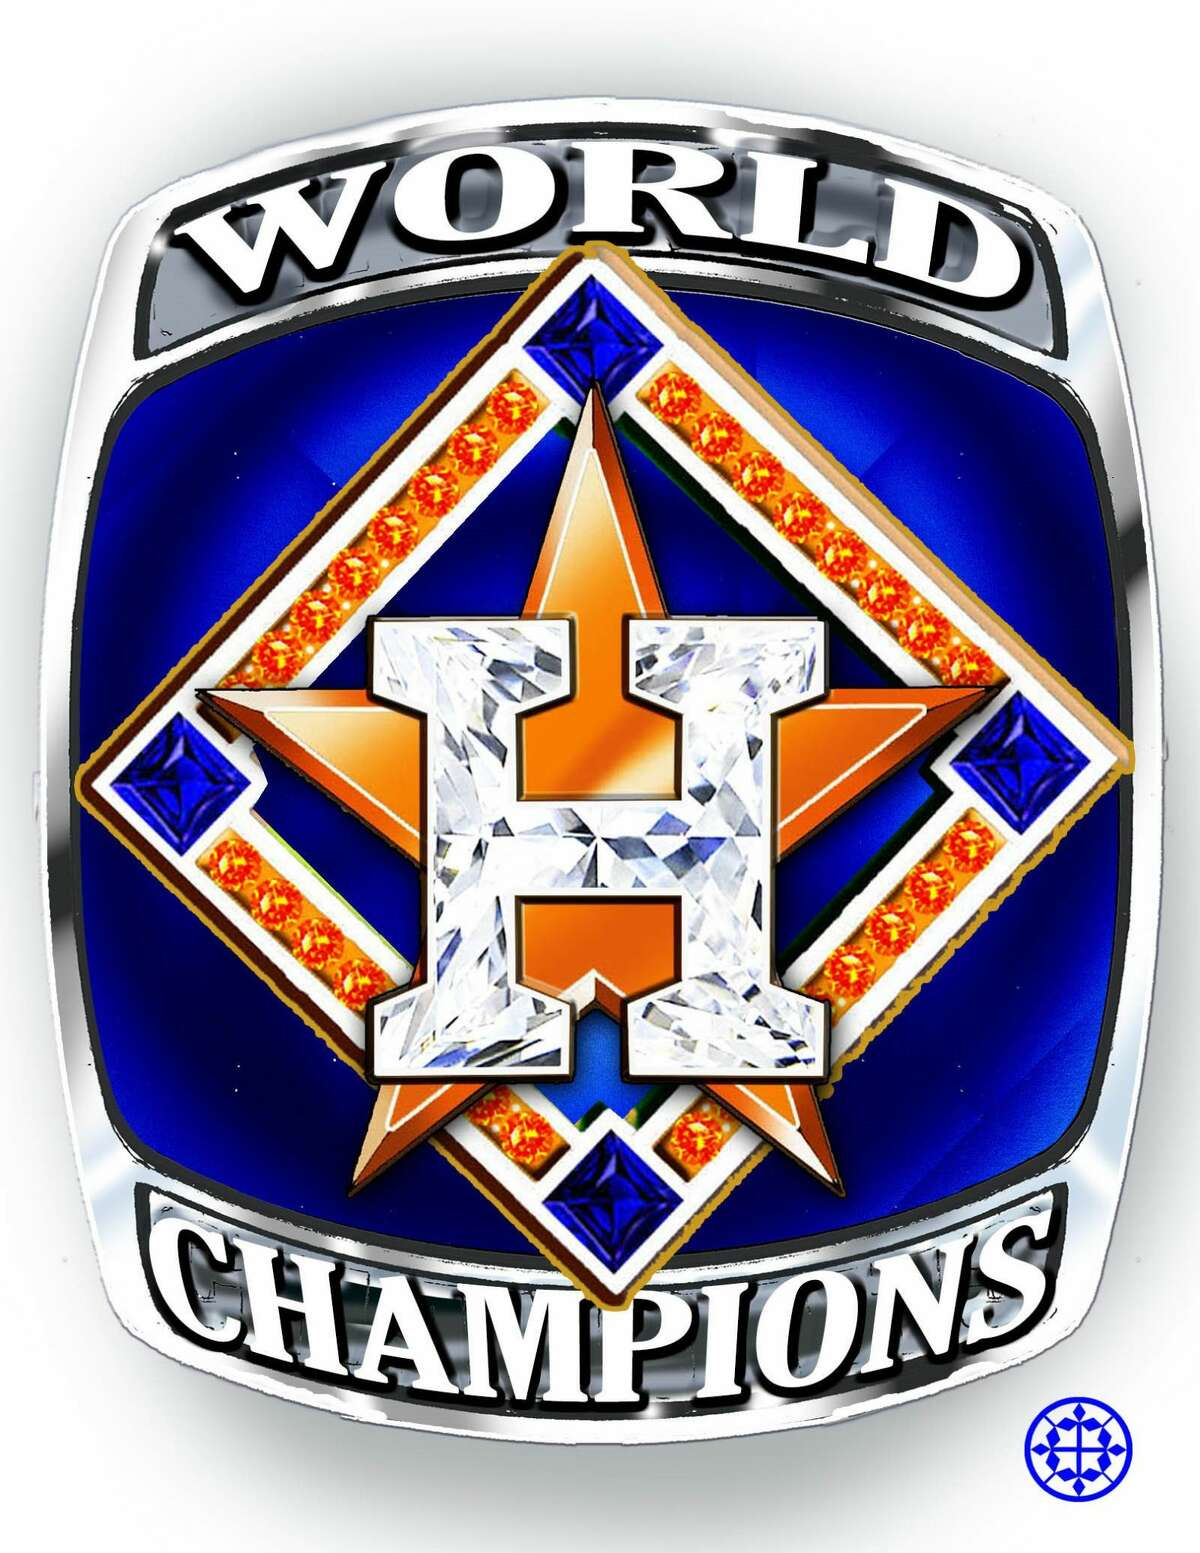 Fred Cuellar from Diamond Cutter's international created some World Series championship ring designs for the Astros. The Houston jeweler put in a bid for the contract to make the official rings.